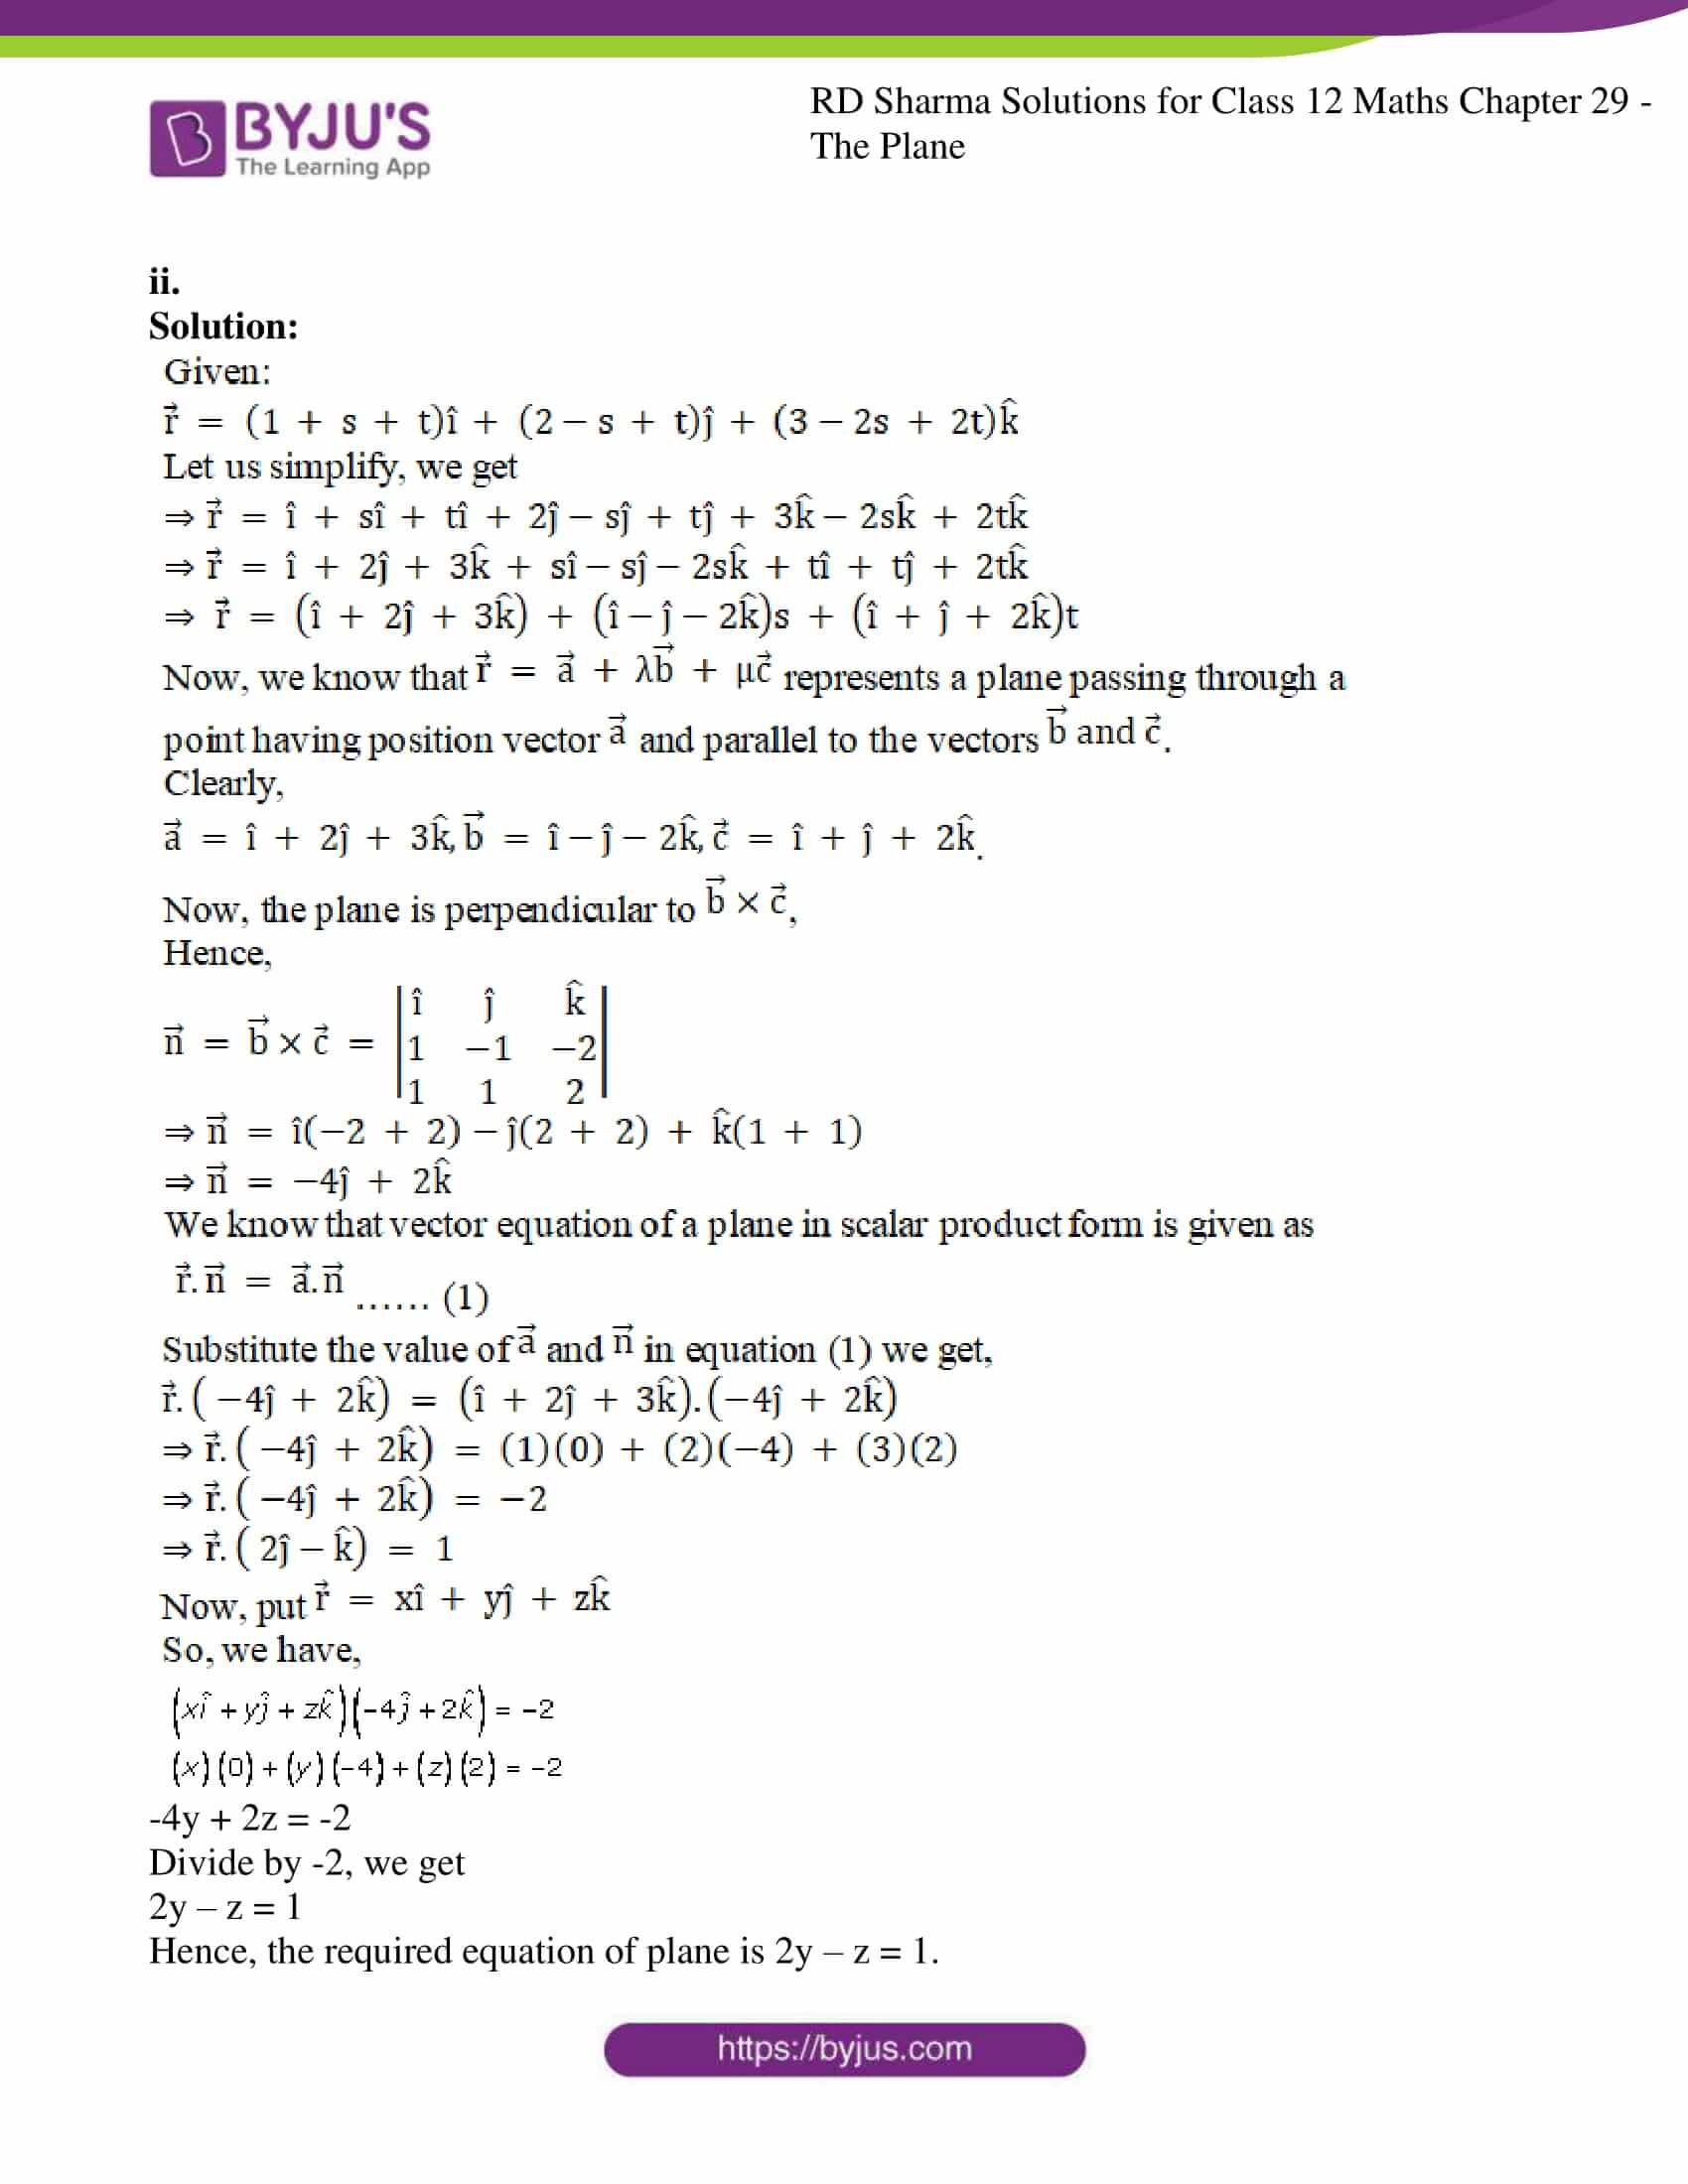 rd sharma solutions for class 12 maths chapter 29 ex 7 5